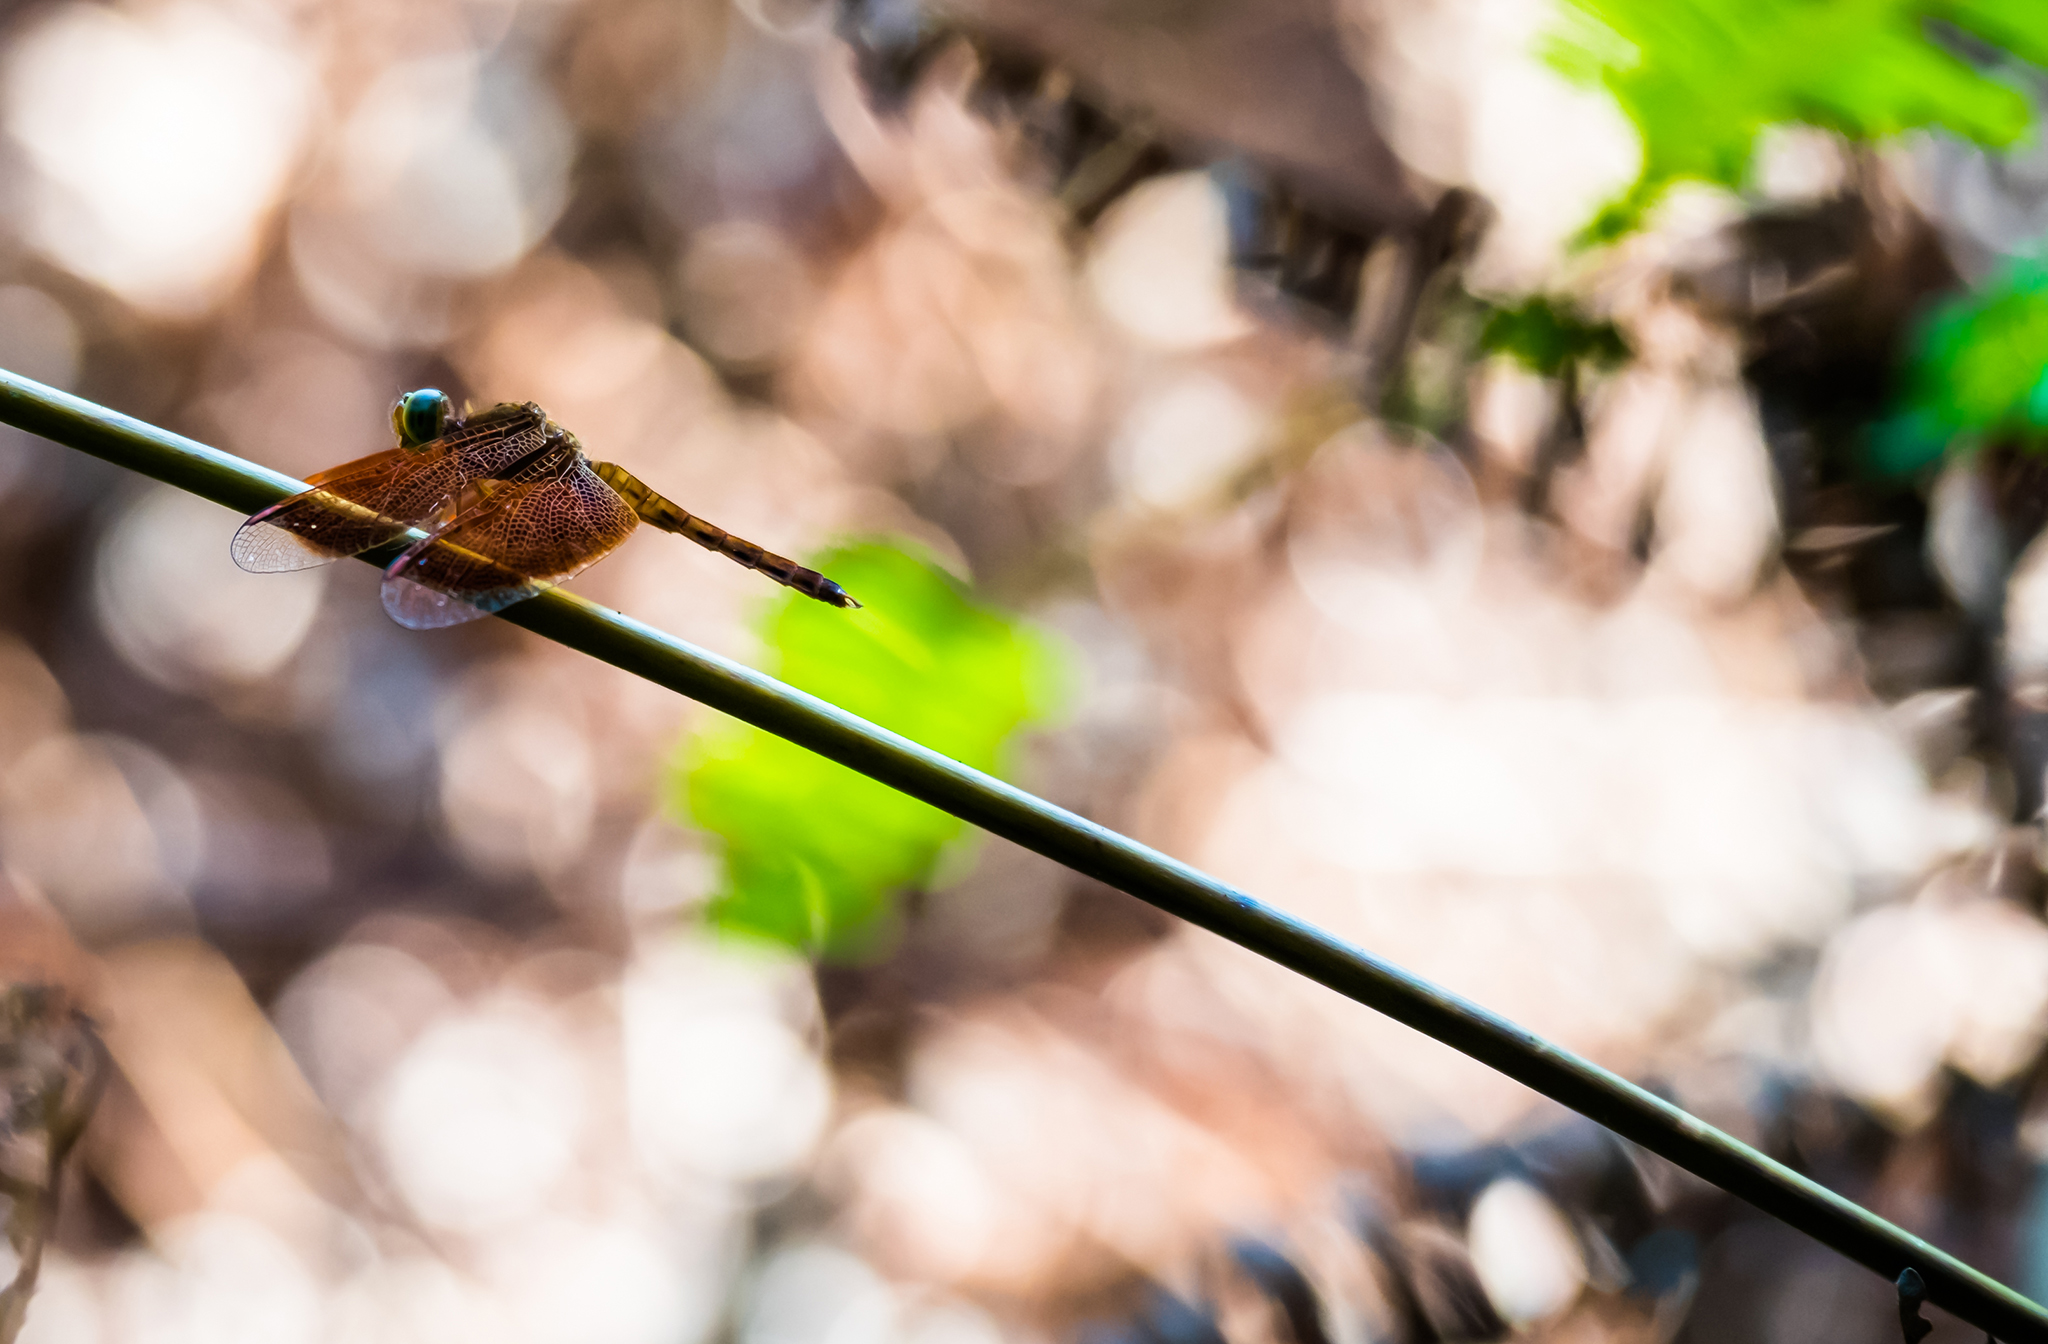 A dragonfly at Camp Leakey, Tanjung Puting, Borneo in the Republic of Indonesia on Mallory on Travel adventure travel, photography, travel iain-mallory_indo-1